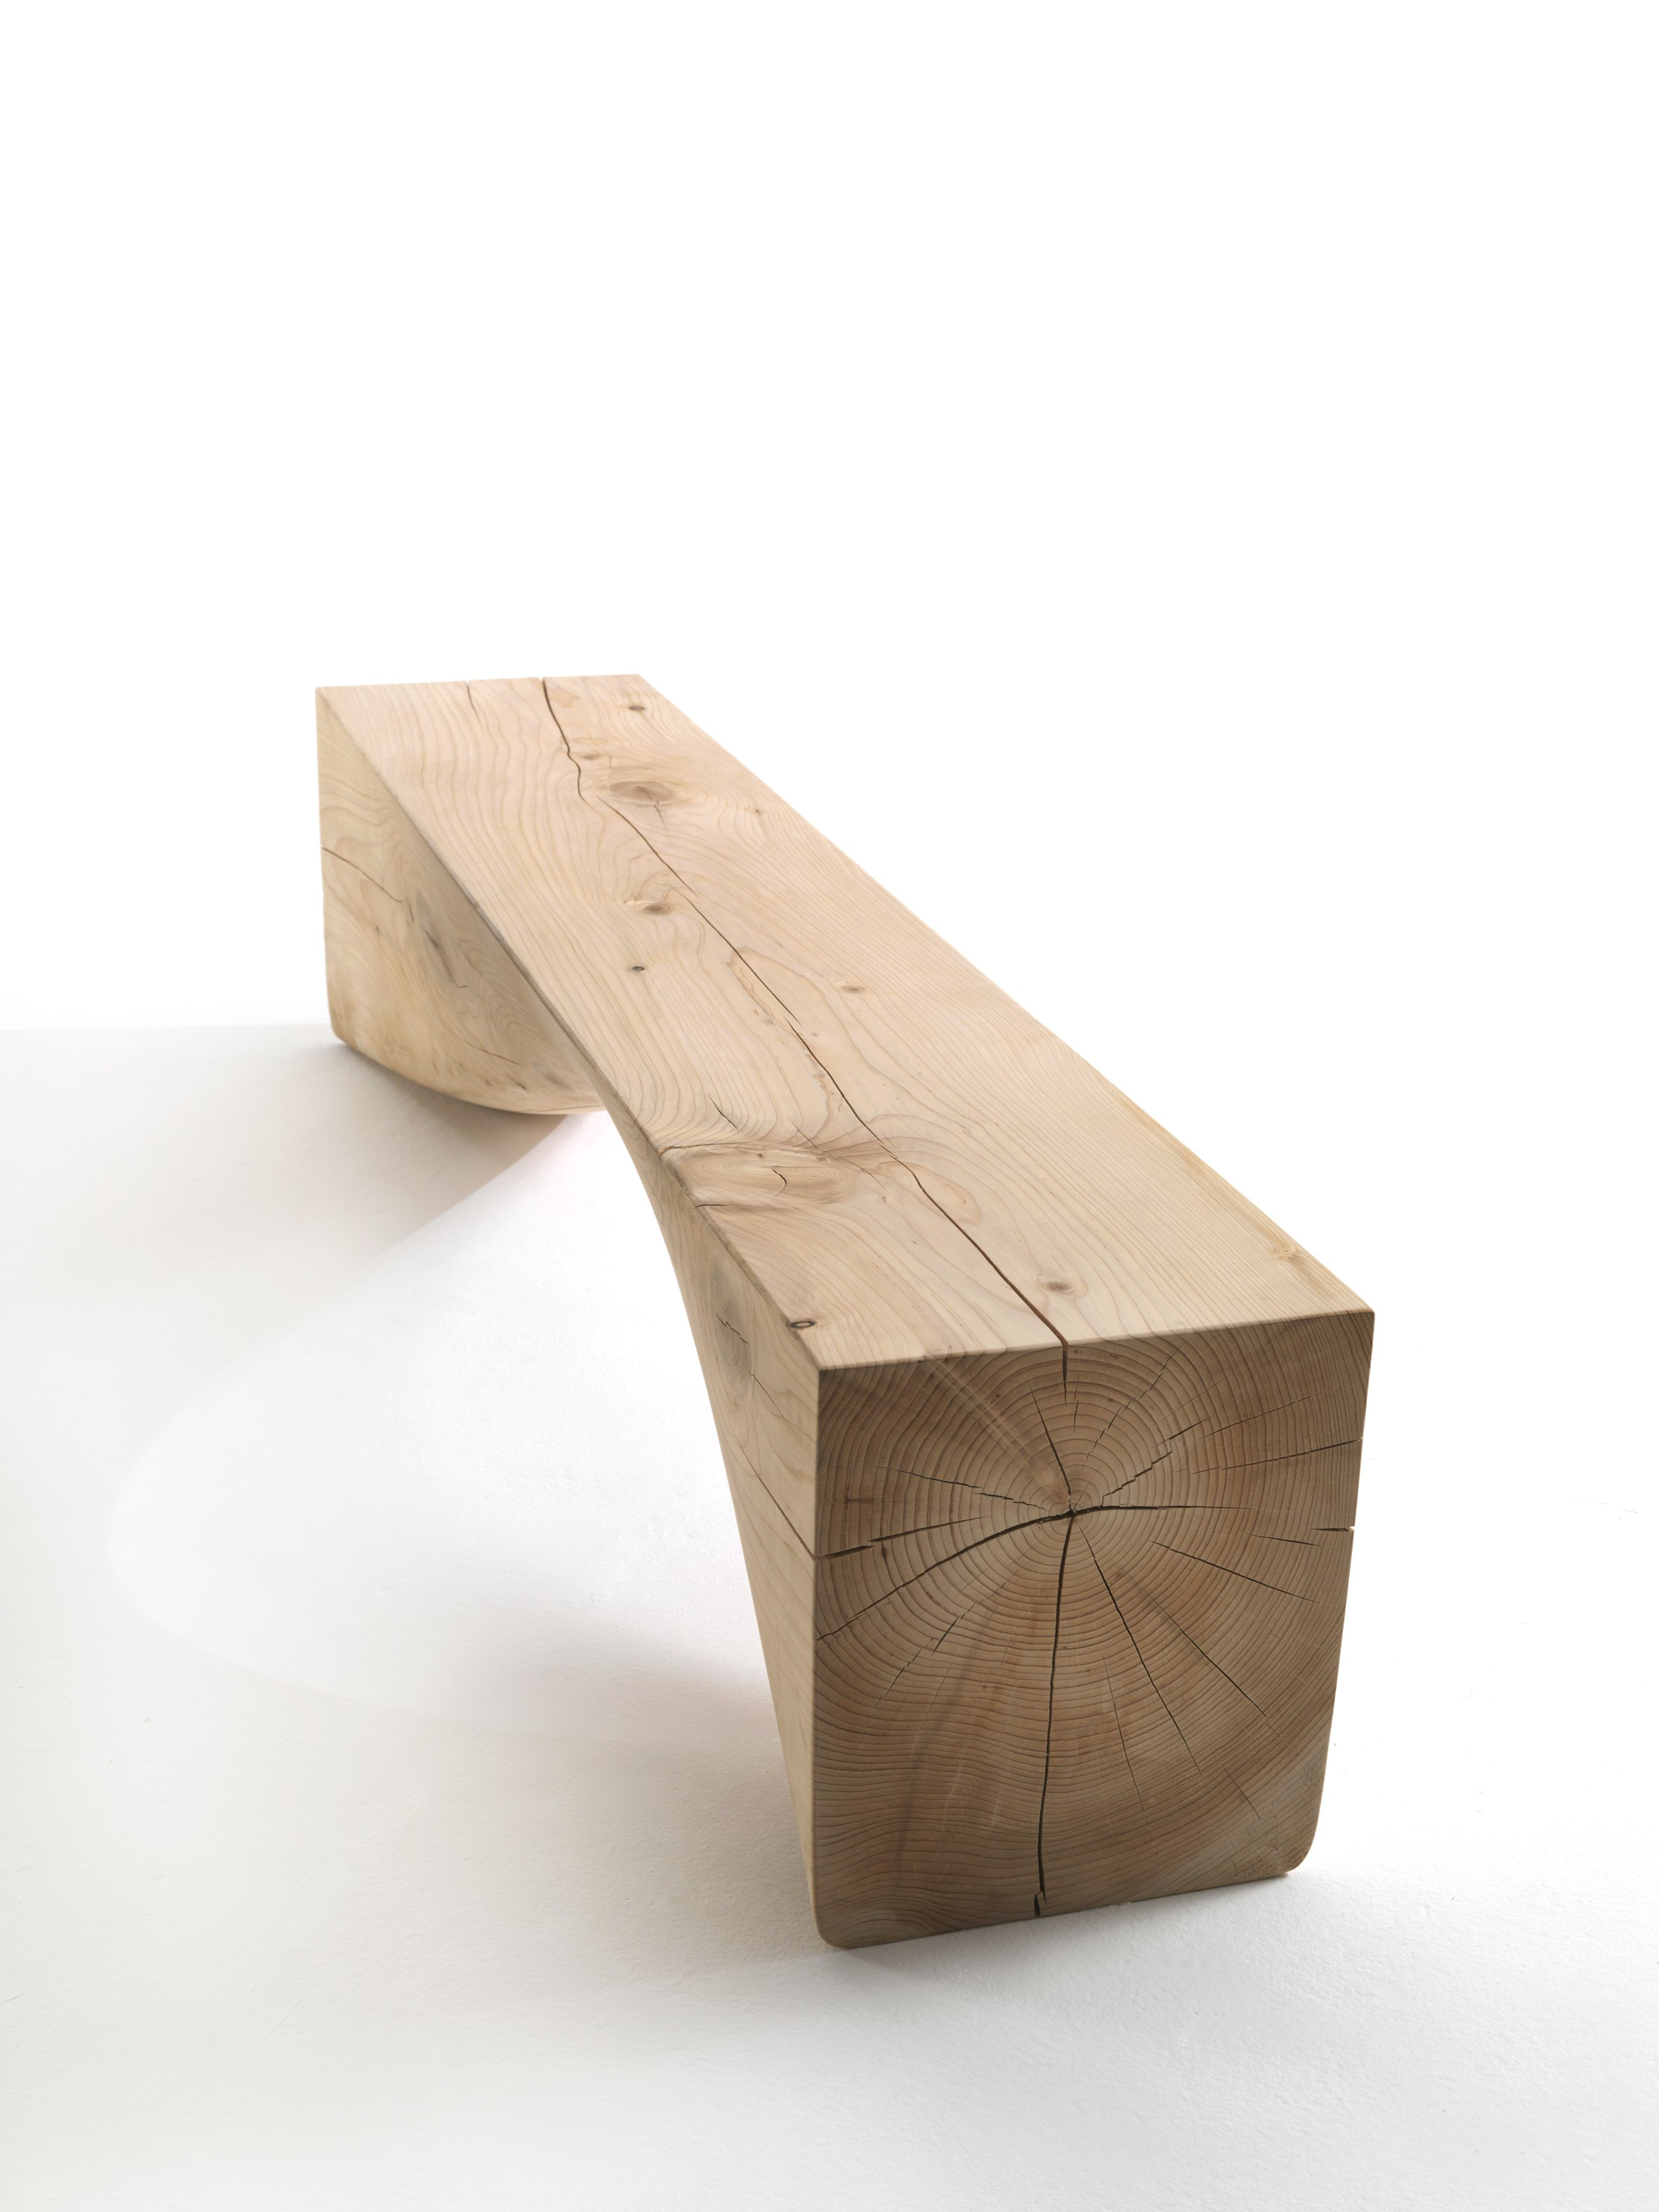 Curve Bench from Riva 1920, designed by Brodie Neill